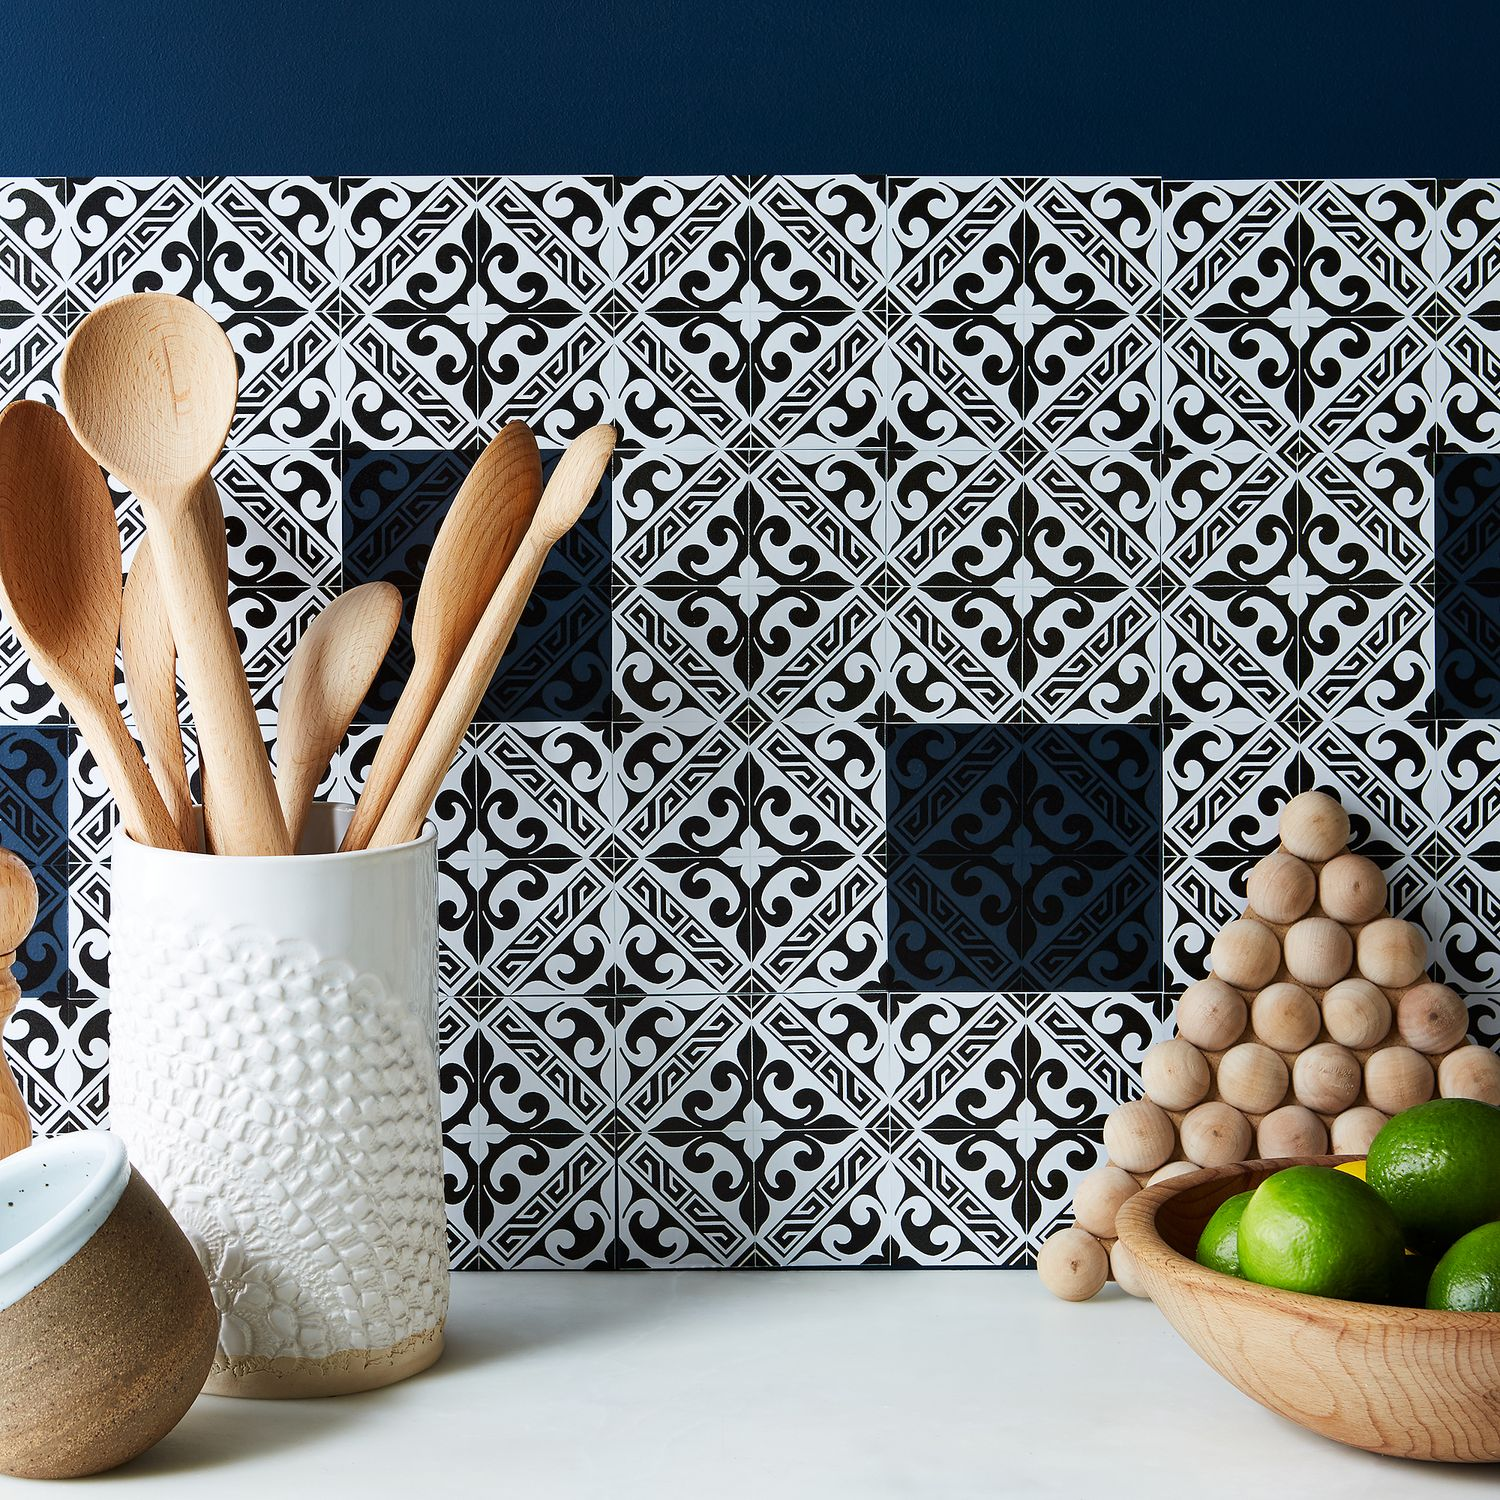 Self Adhesive Mosaic Tile Backsplash 48 Tiles On Food52